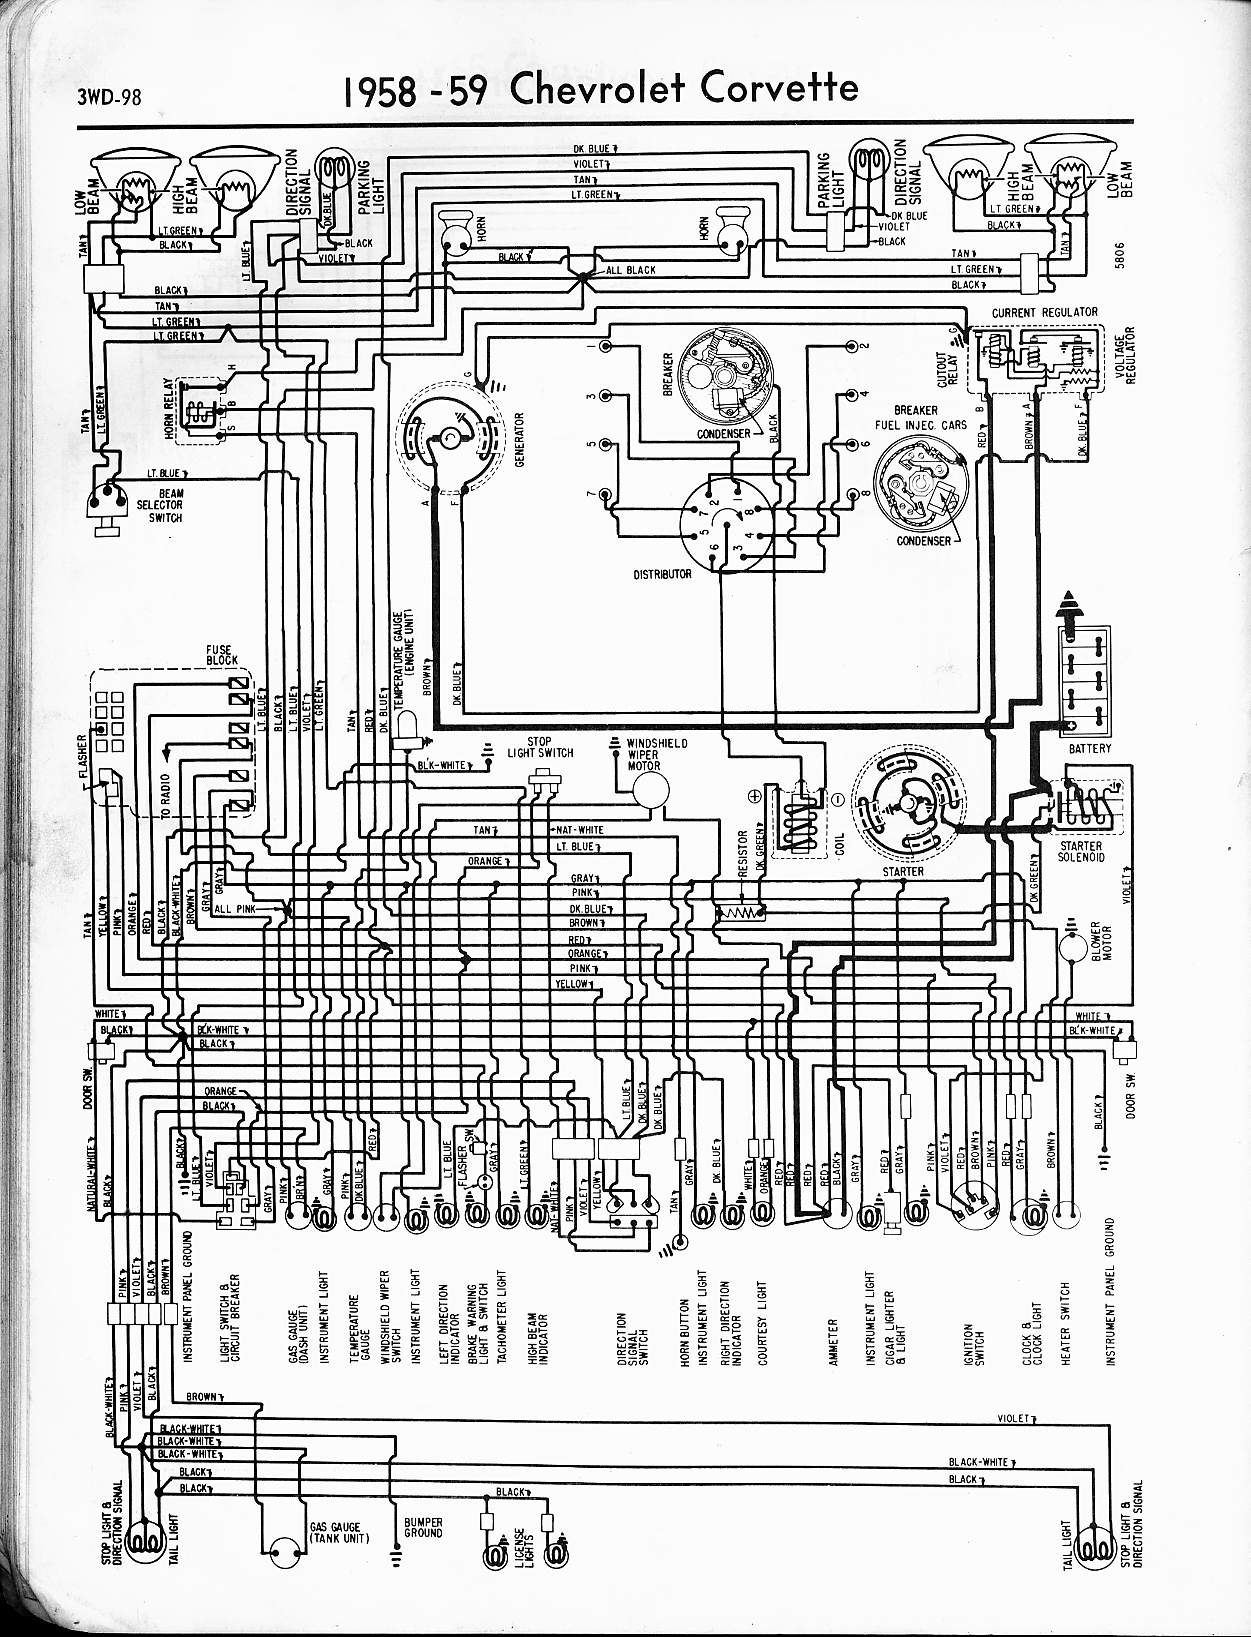 1959 chevy apache wiring diagram - wiring diagram 1961 chevrolet apache wiring diagram #12